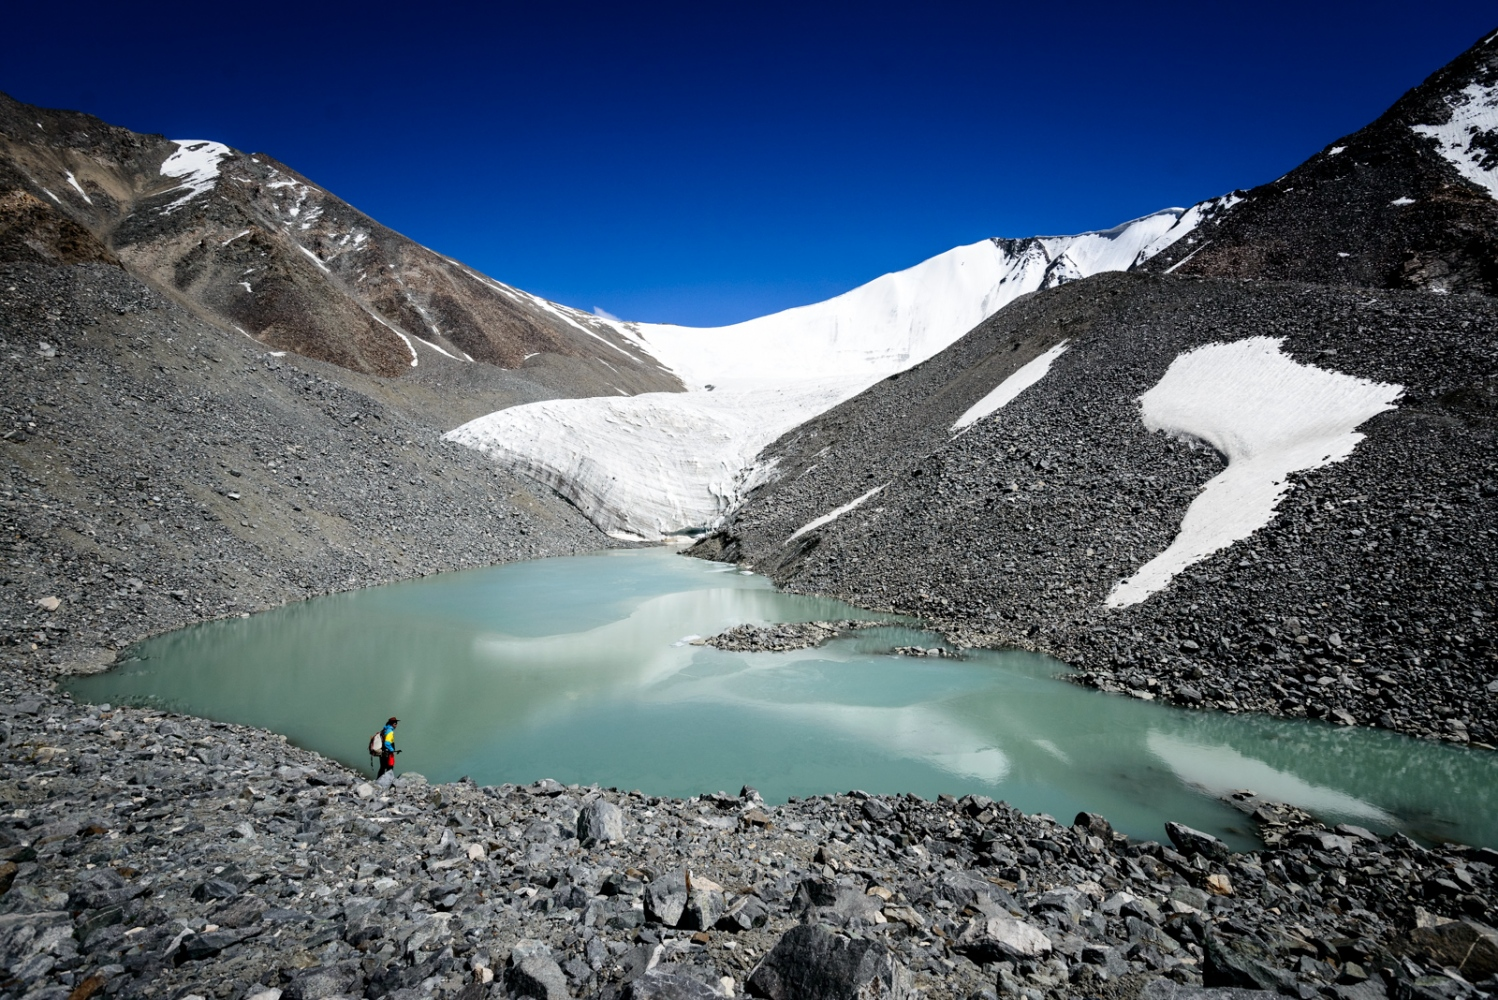 Phyang glacier 1: Prehistoric glacier and glacier lake, surrounded by debris outburst flows. Geoscientist Sergiu in the foreground uses laser emitting devices to measure changes in ice volume.